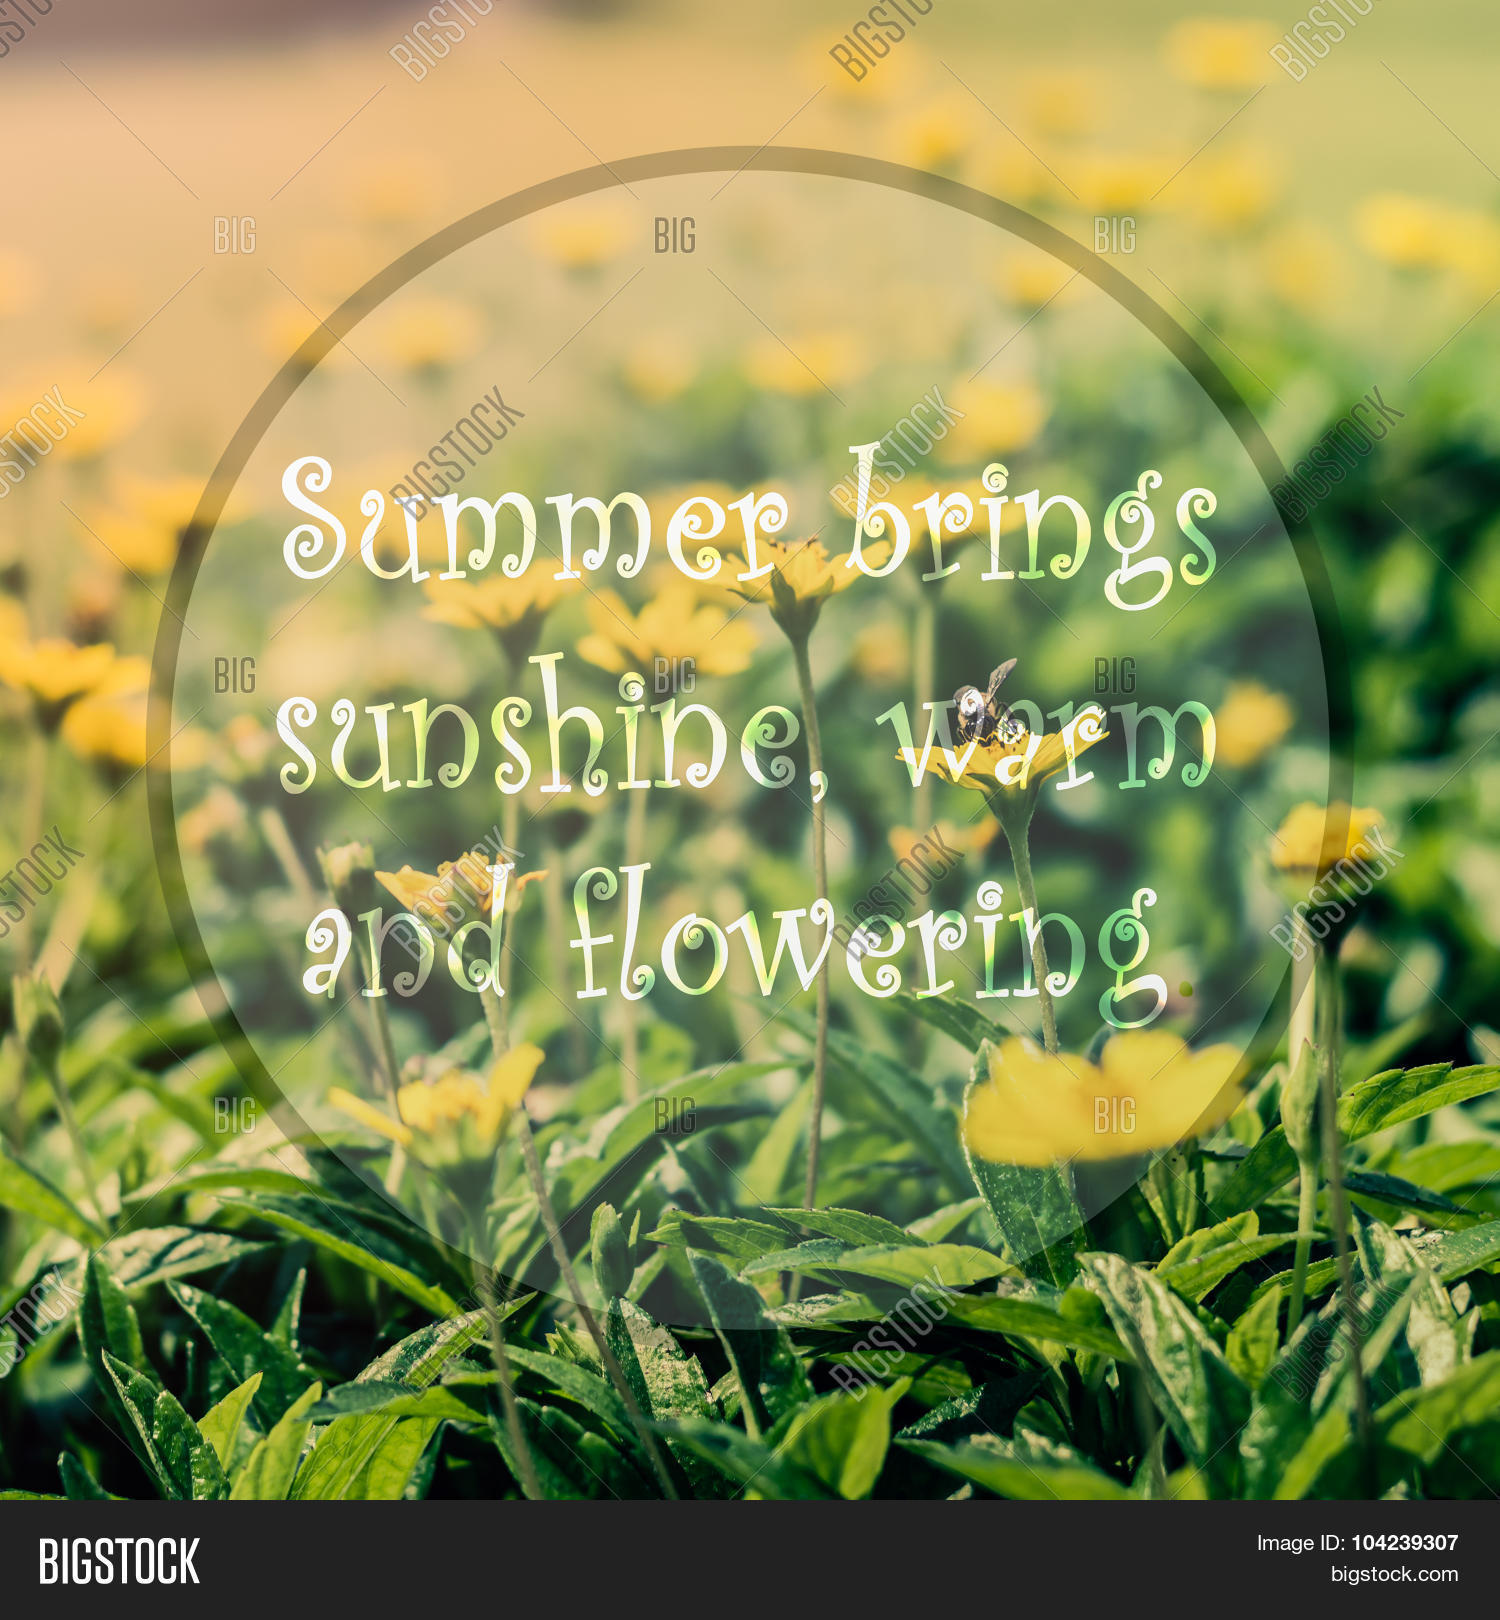 Meaningful Quote On Image Photo Free Trial Bigstock